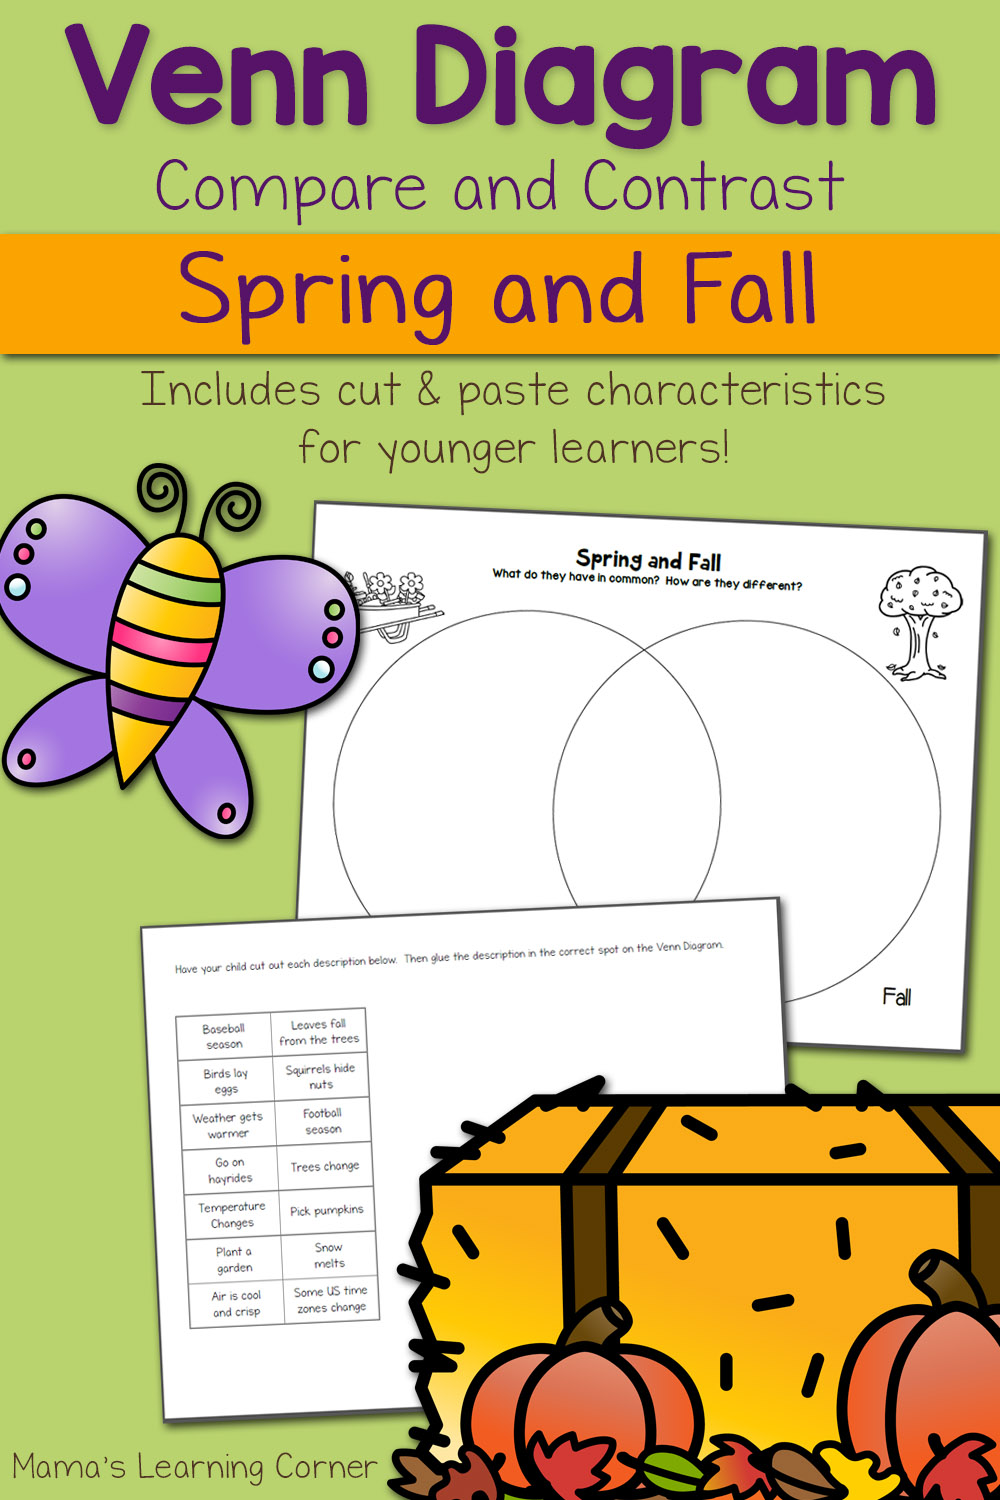 hight resolution of Spring and Fall Venn Diagram Worksheet - Mamas Learning Corner